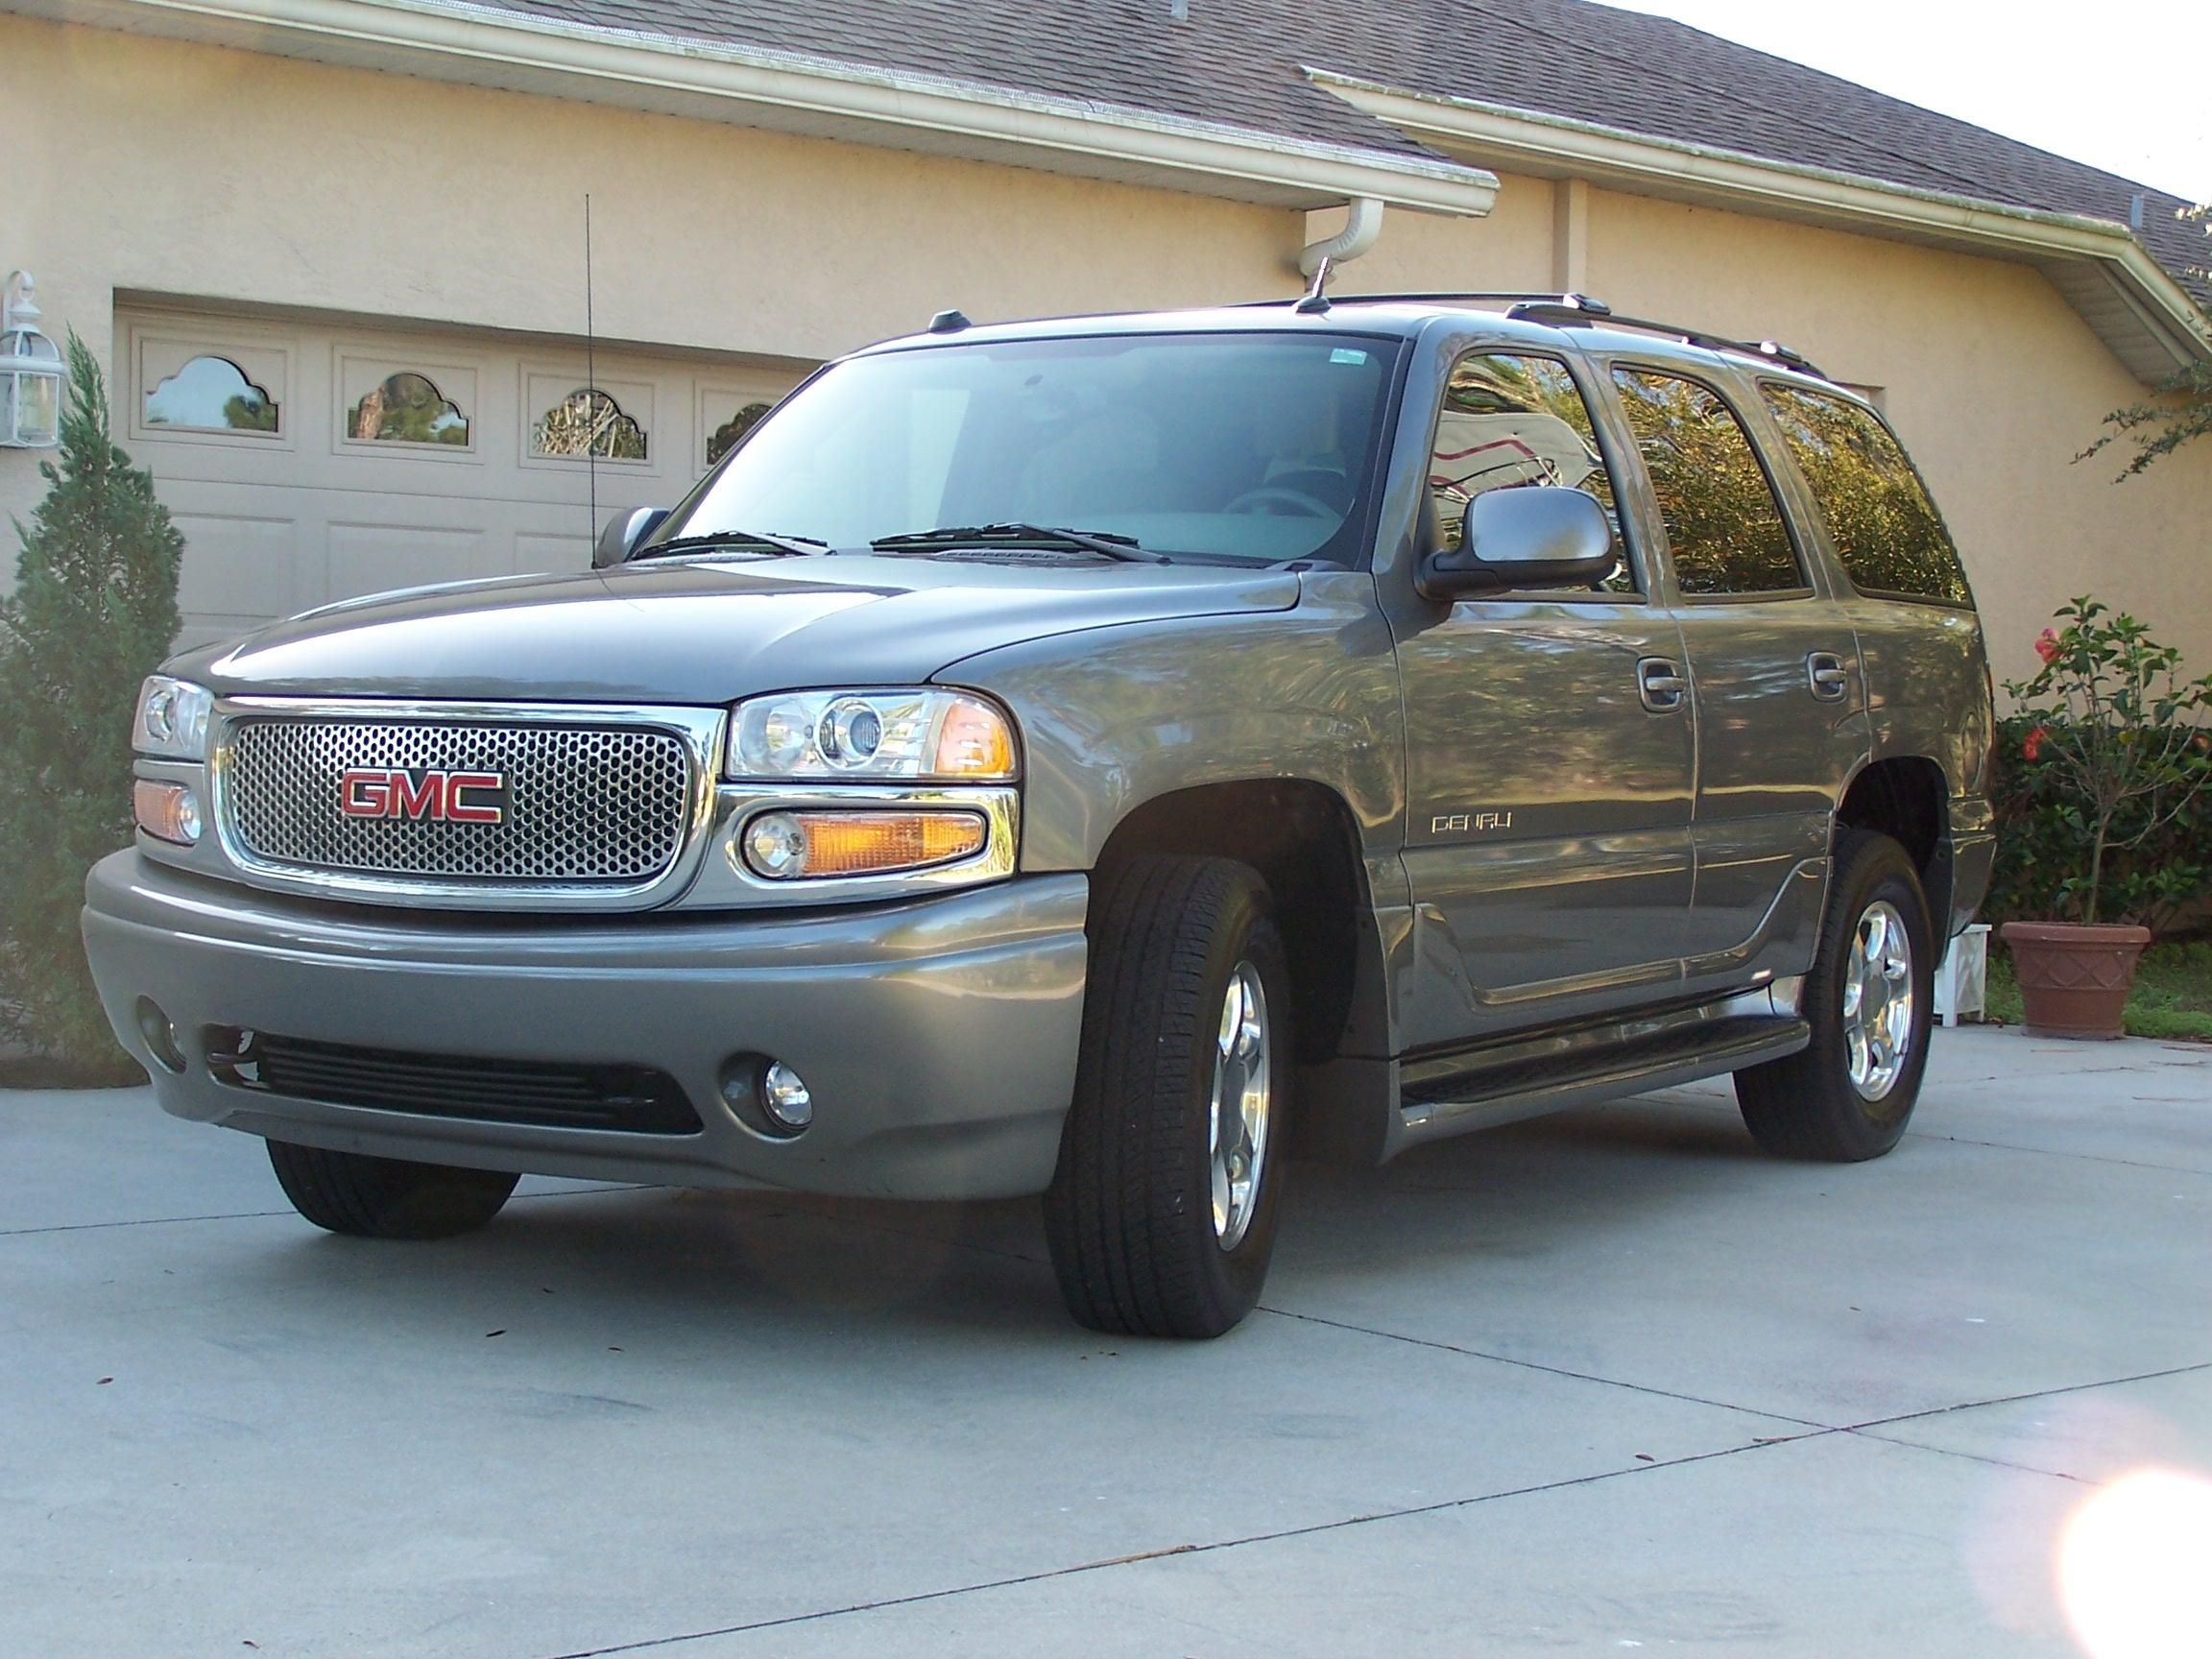 full xl yukon hd extended size wallpaper gmc denali